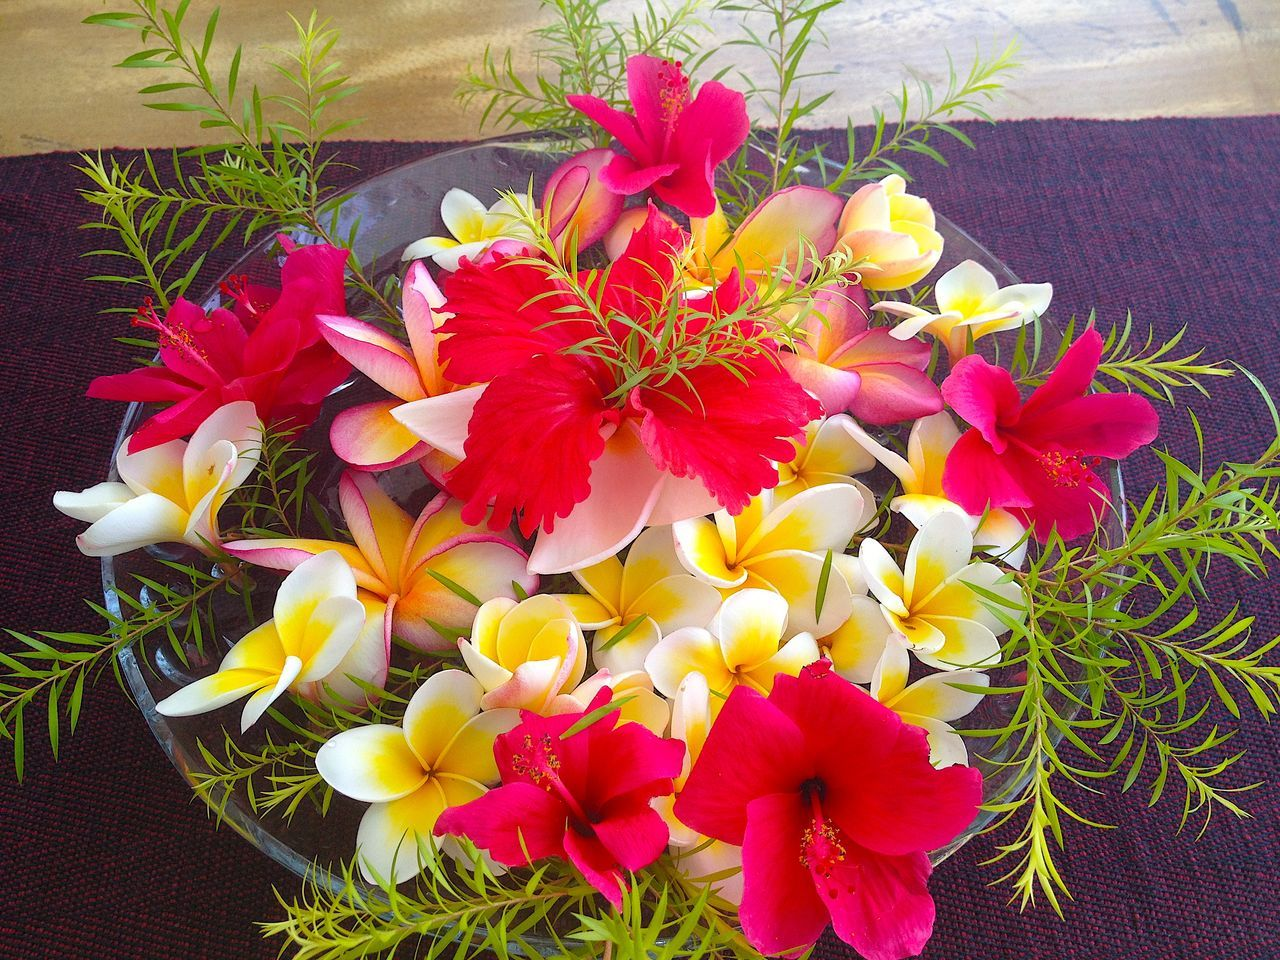 Bright Colours Bright Flowers Close-up Colours Day Elegant Exotic Flower Exotic Flower Arrangement Flower Flower Arrangement Flower Head Fragility Freshness Natural Beauty Nature No People Orchid Petal Plant Red And Yellow Flower Table Arrangement Table Flower